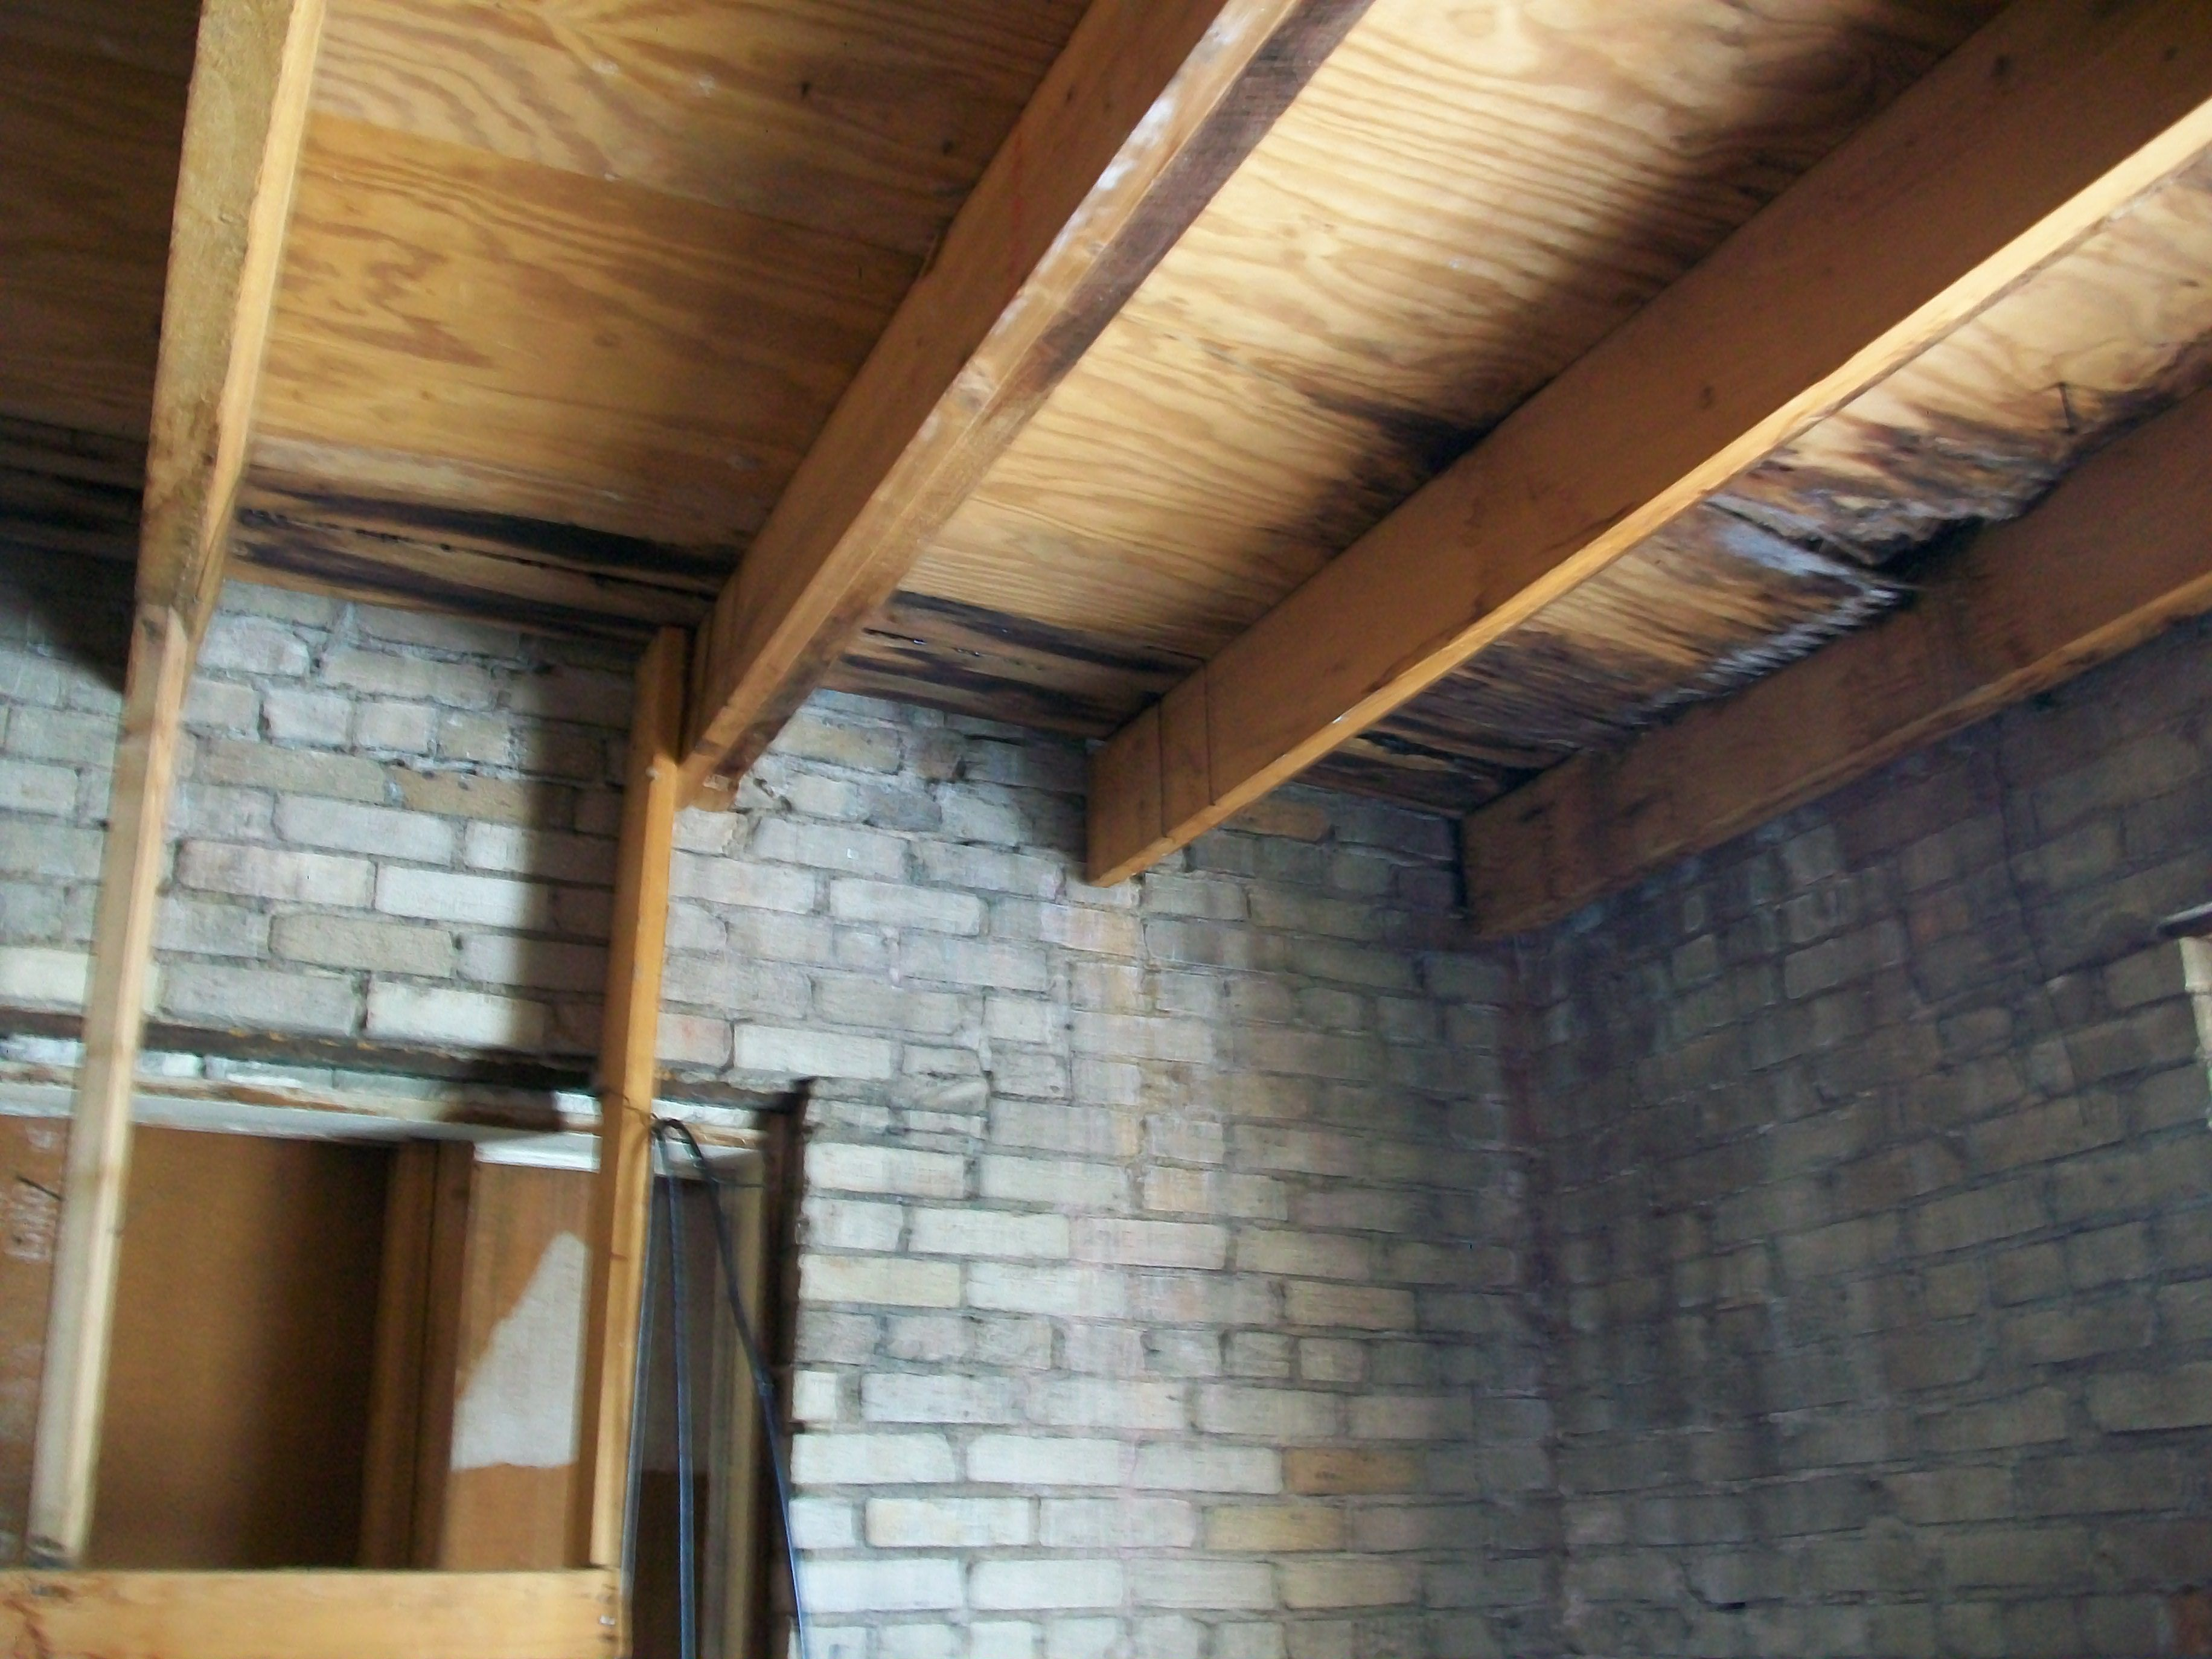 Yup, Water problems!  This is the underside of the roof of the tower.  Doesn't look good, and this was 2009.